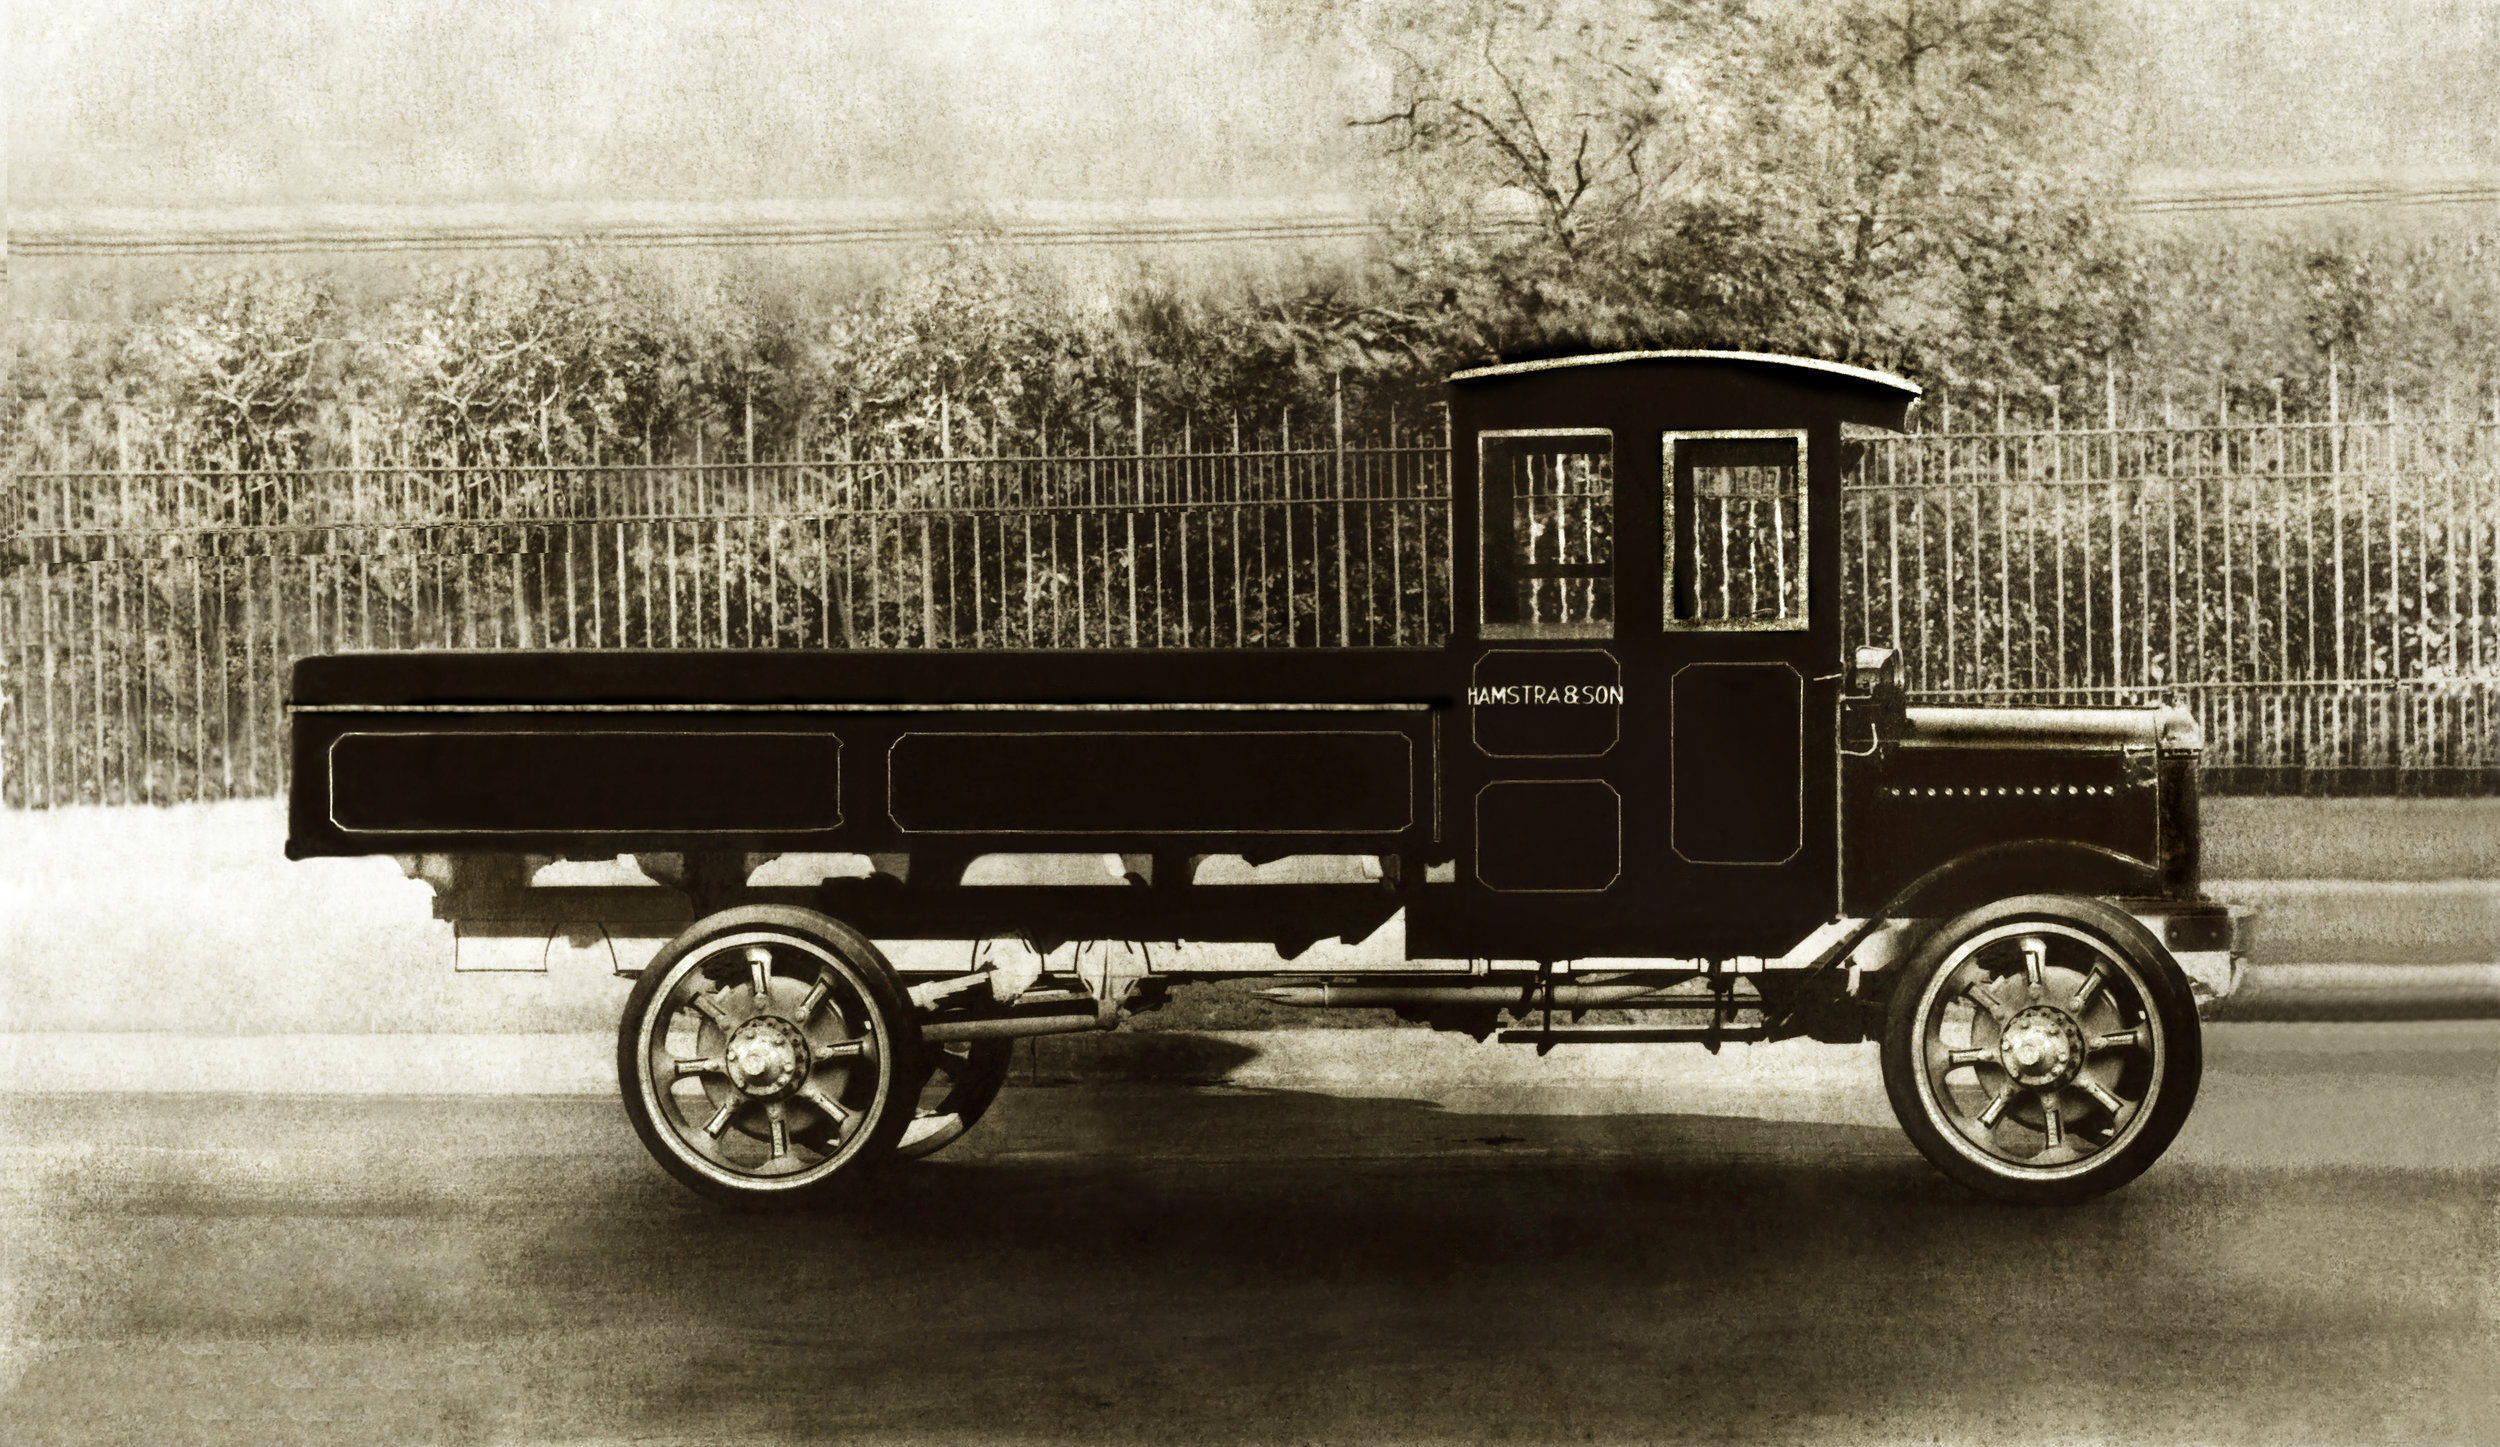 Hamstra and Son Truck.jpg